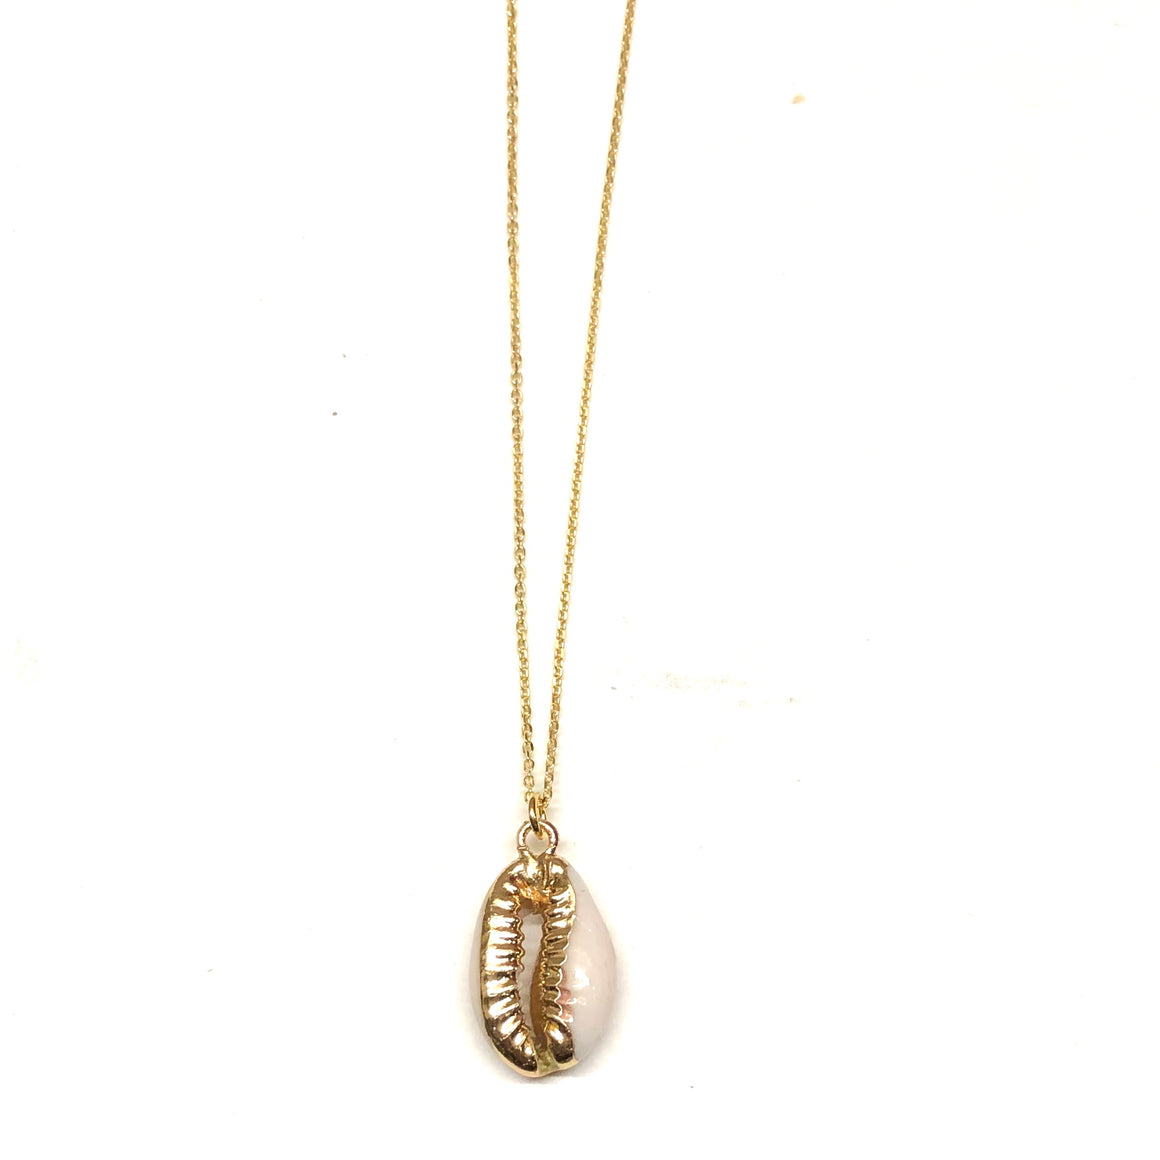 Cowrie Shell Gold Short Necklace - Nikki Smith Designs